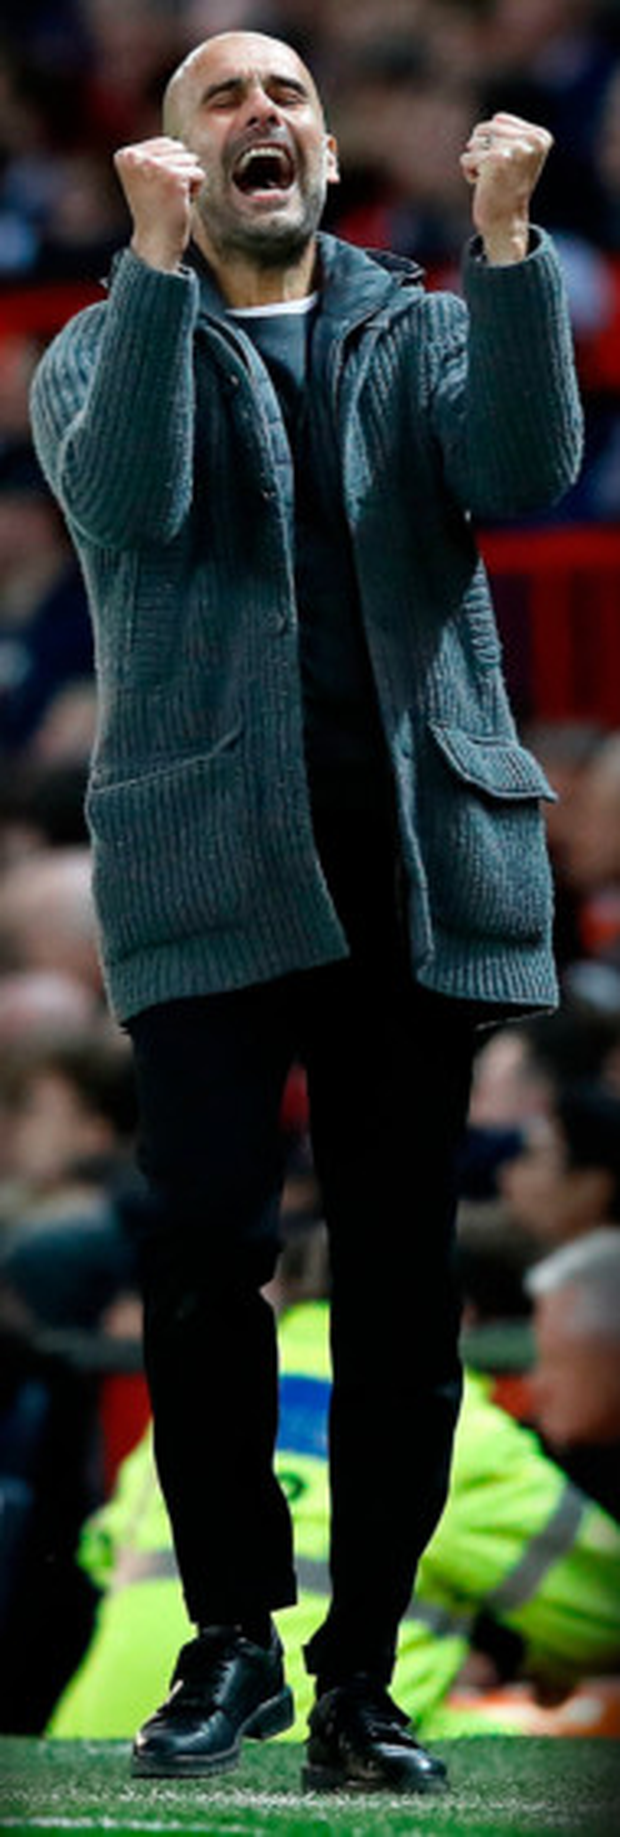 Manchester City manager Pep Guardiola celebrates the midweek derby win over Manchester United